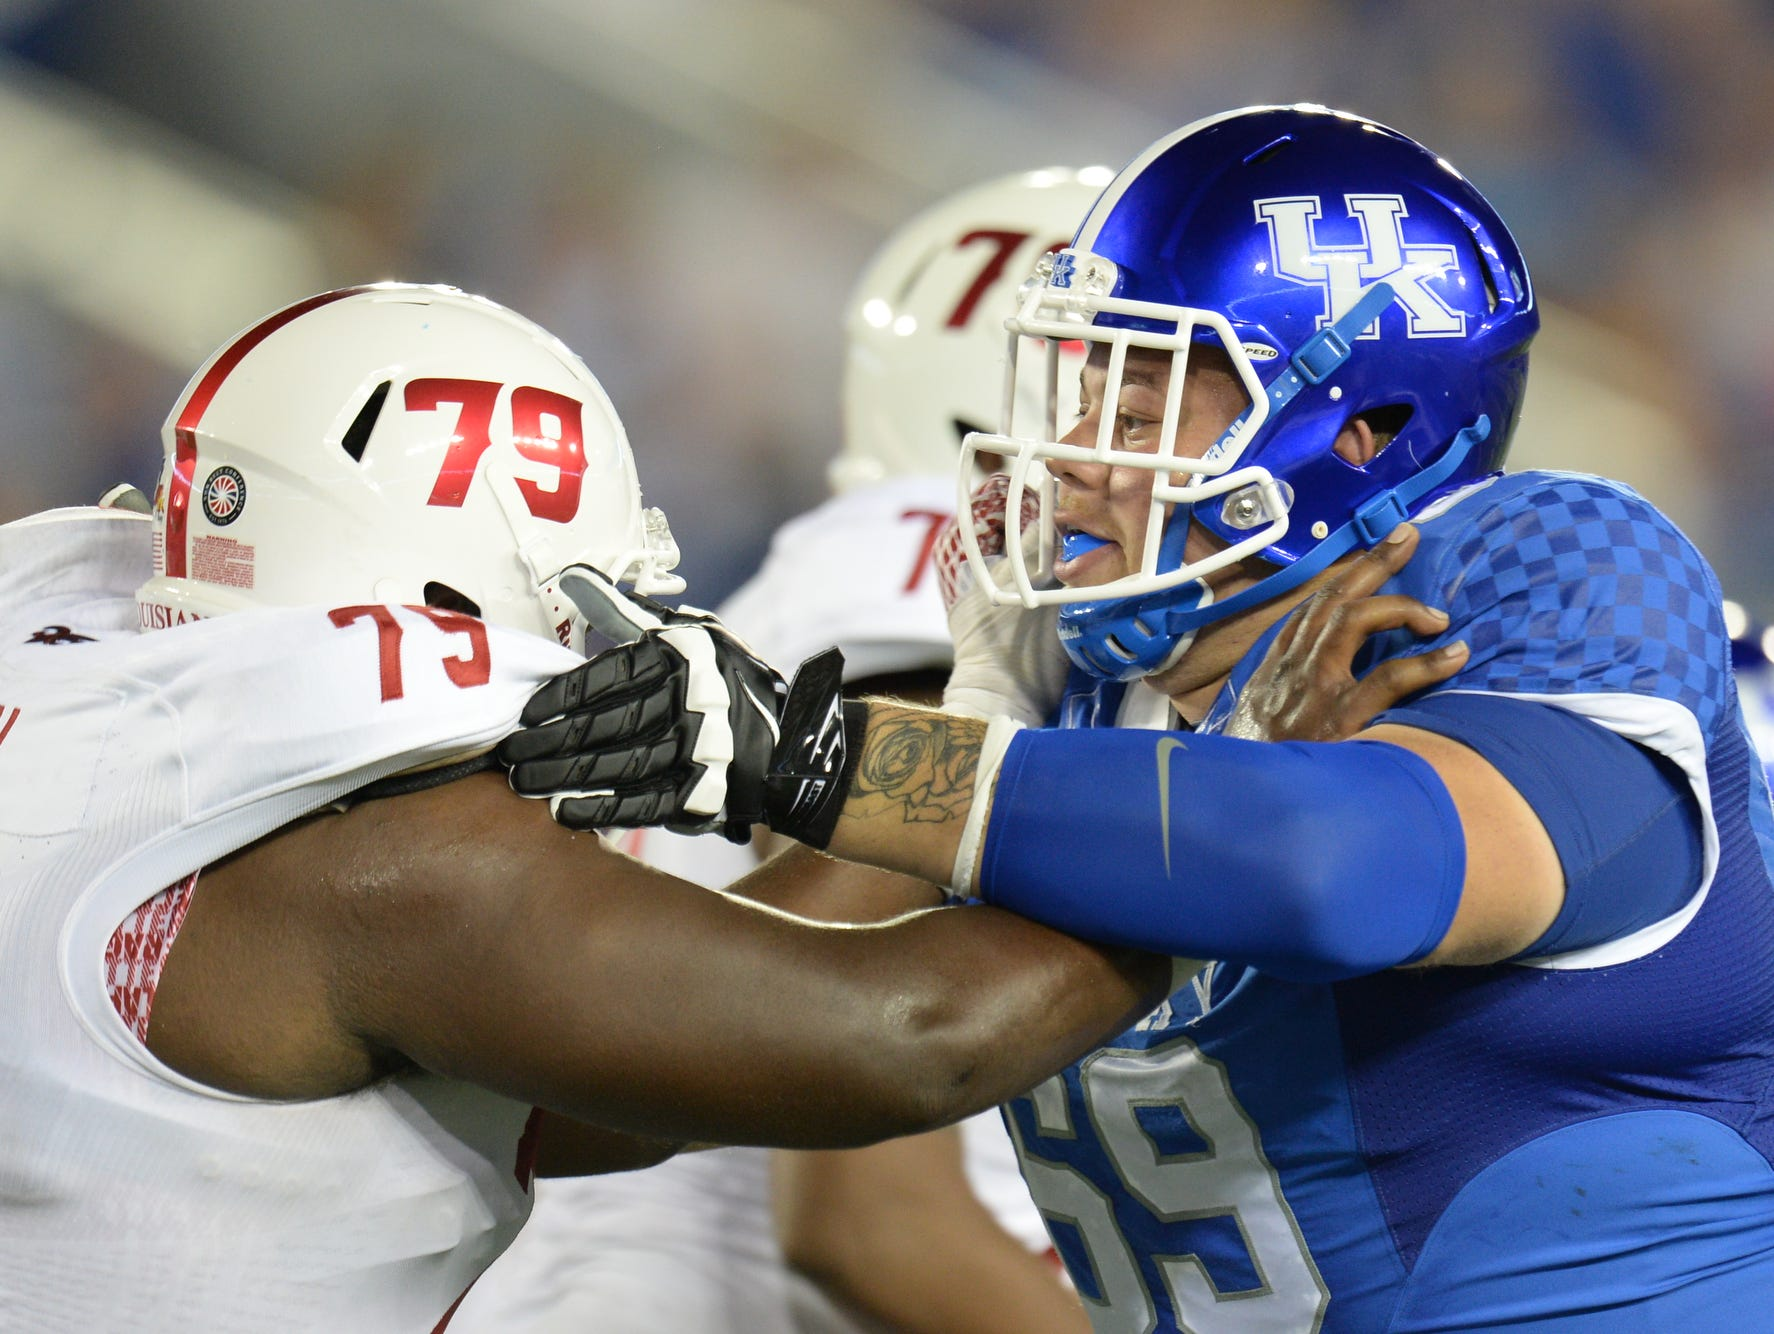 UK DT Matt Elam during the first half of the University of Kentucky football game against Louisiana-Lafayette at Commonwealth Stadium in Lexington, Ky., on Saturday, September 5, 2015. Photo by Mike Weaver